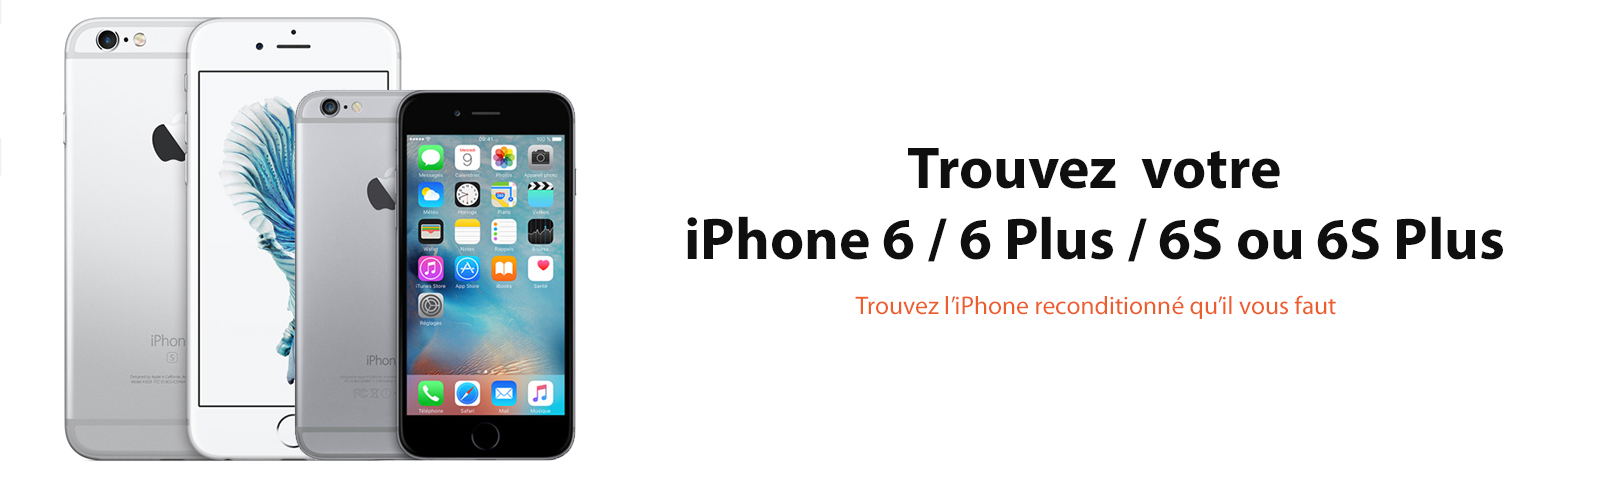 iphone 6 6s 6Plus 6Splus reconditionne france 64 128 blanc noir